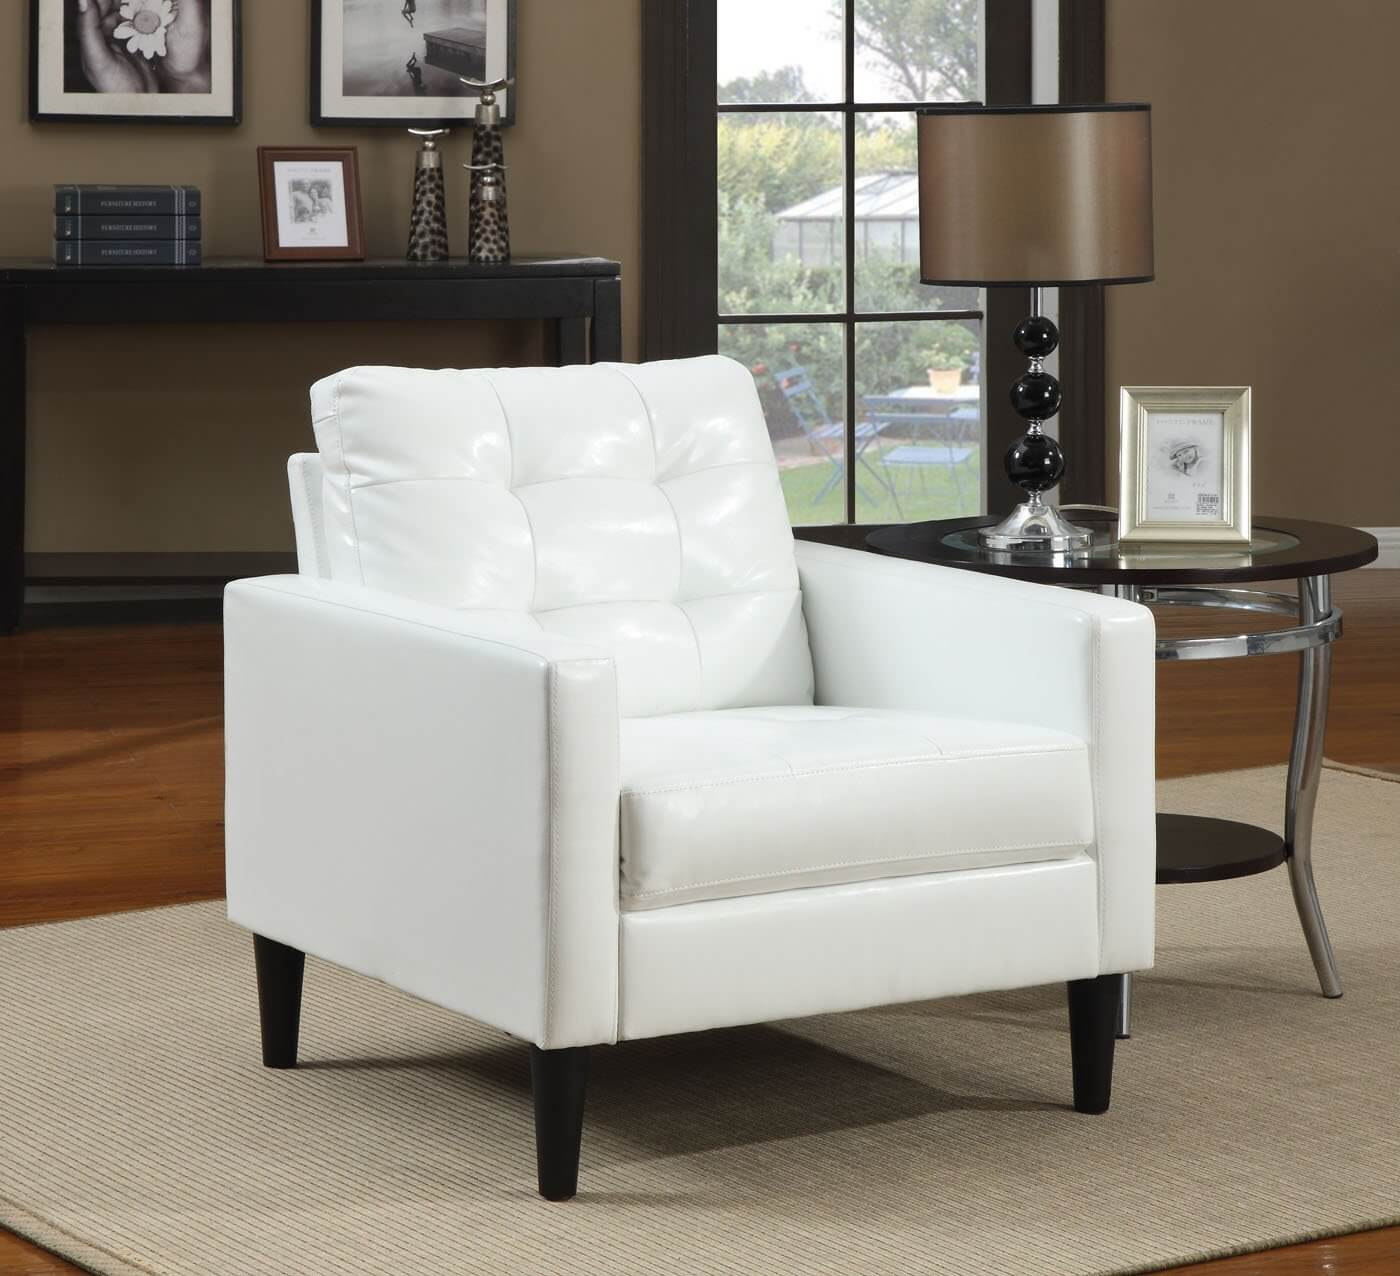 Balin Collection Accent Chair From ACME Features Stuffed Cushion Back In  Polyurethane Faux White Leather,